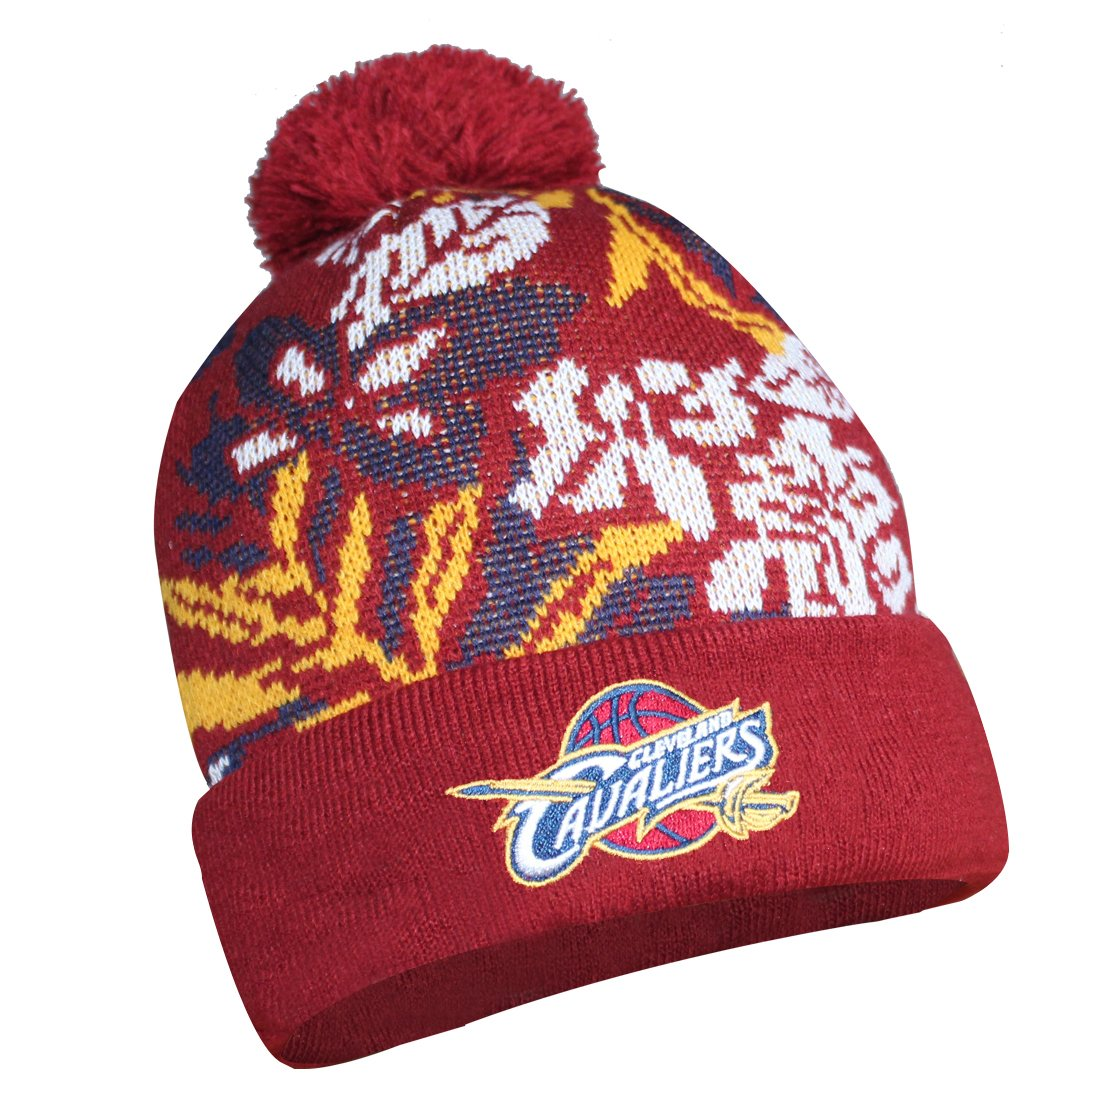 Amazon.com  Sports Shack CLE Cavaliers  Adult Winter Hat (One Size)  Multicolor  Sports   Outdoors cbccd02e002